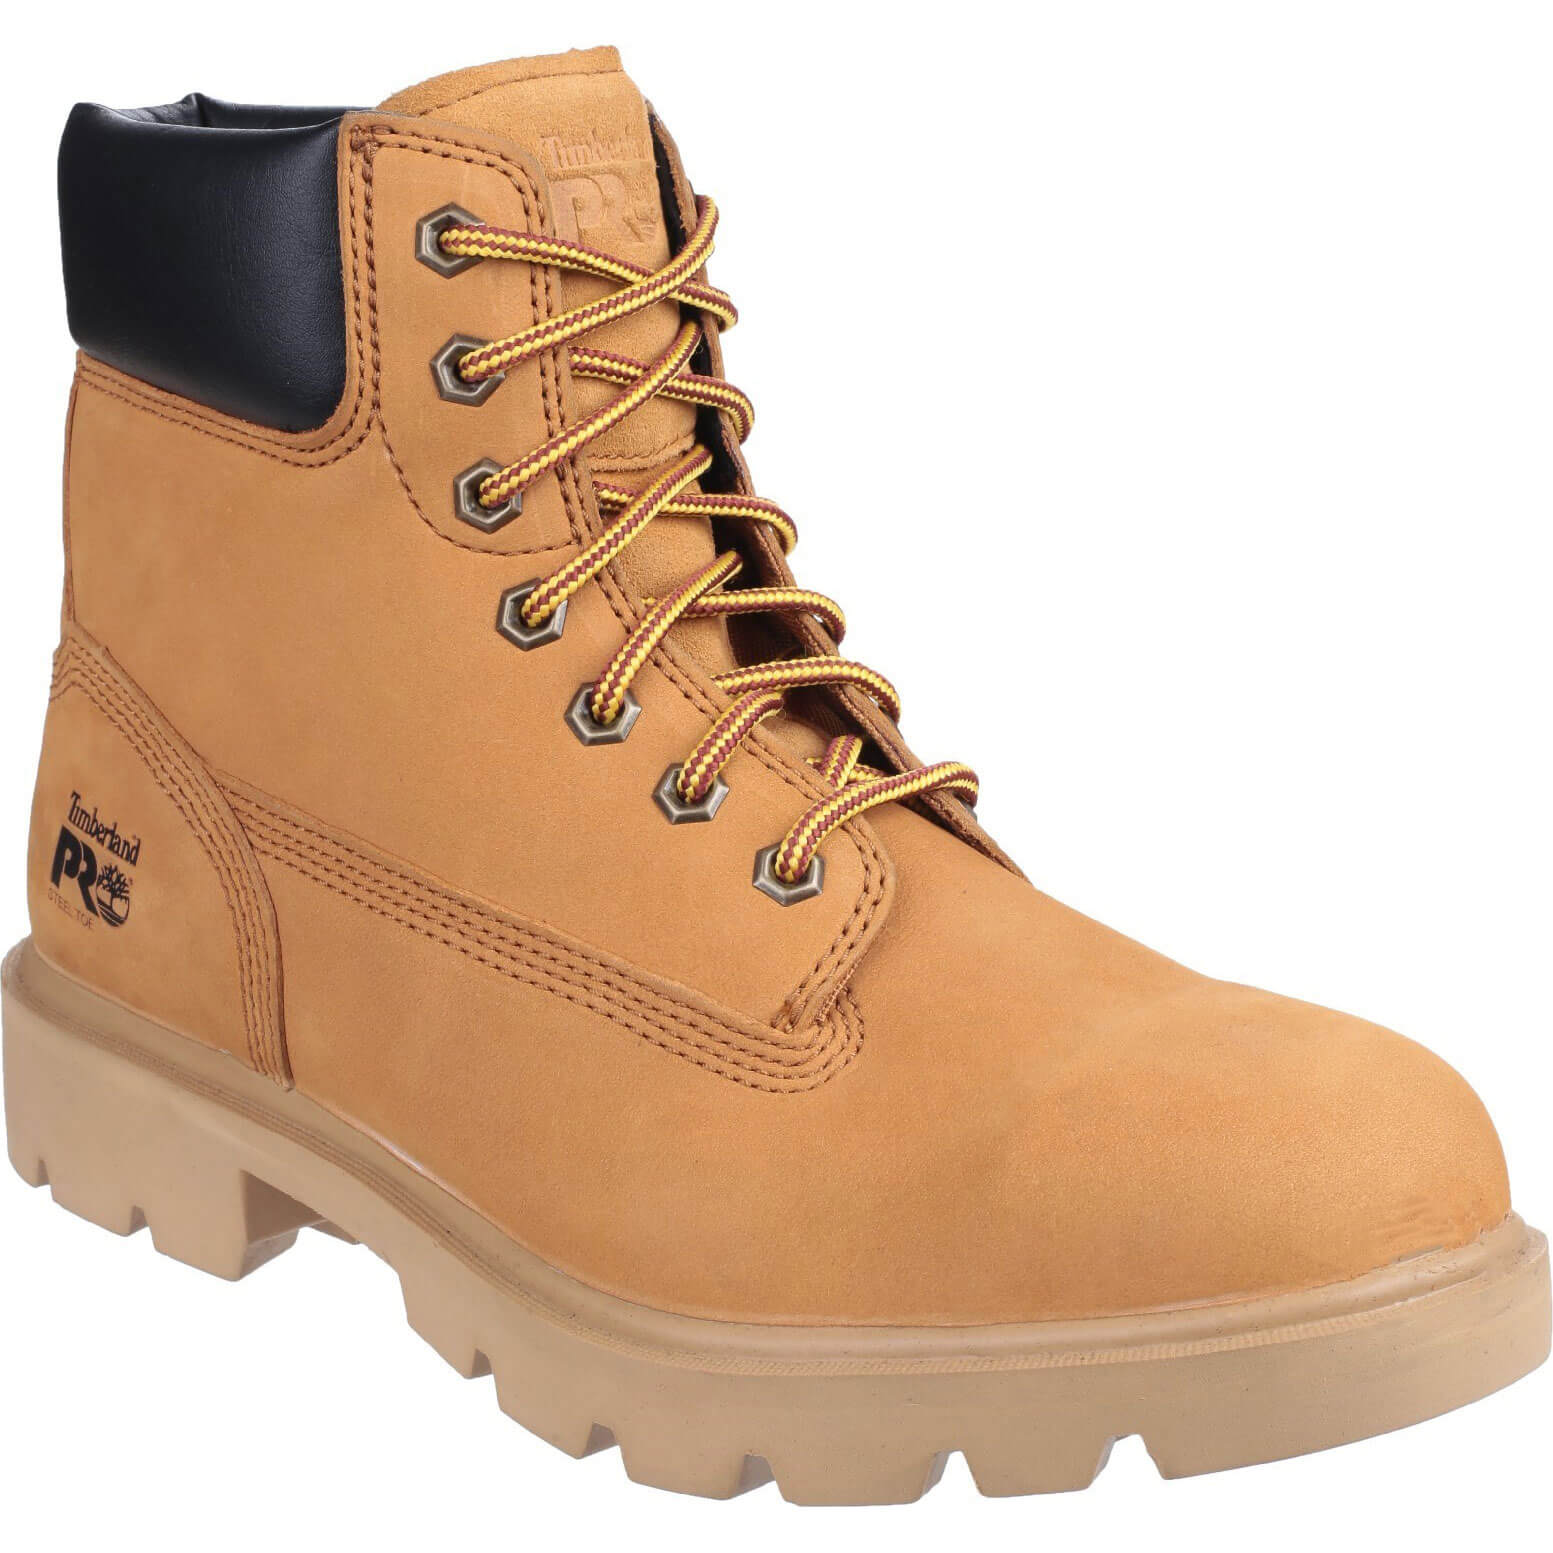 Image of Timberland Pro Mens Saw Horse Safety Boots Wheat Size 10